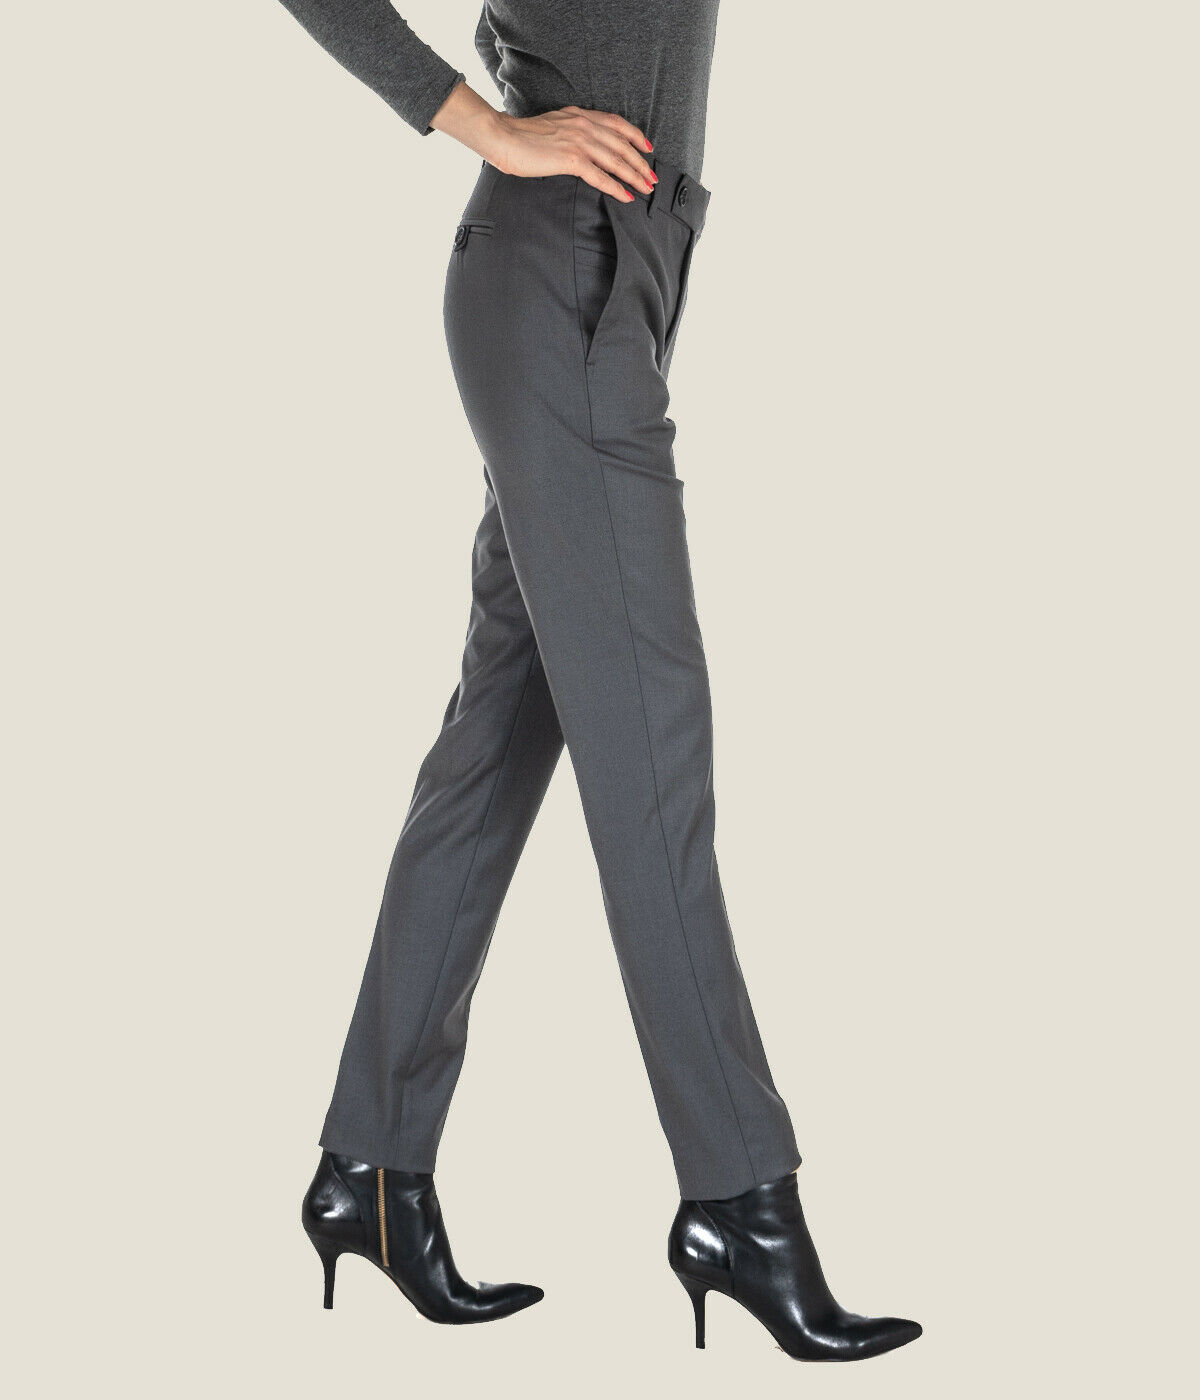 Woman Pants HANITA grau Wool Fitted p831.2205 Made in